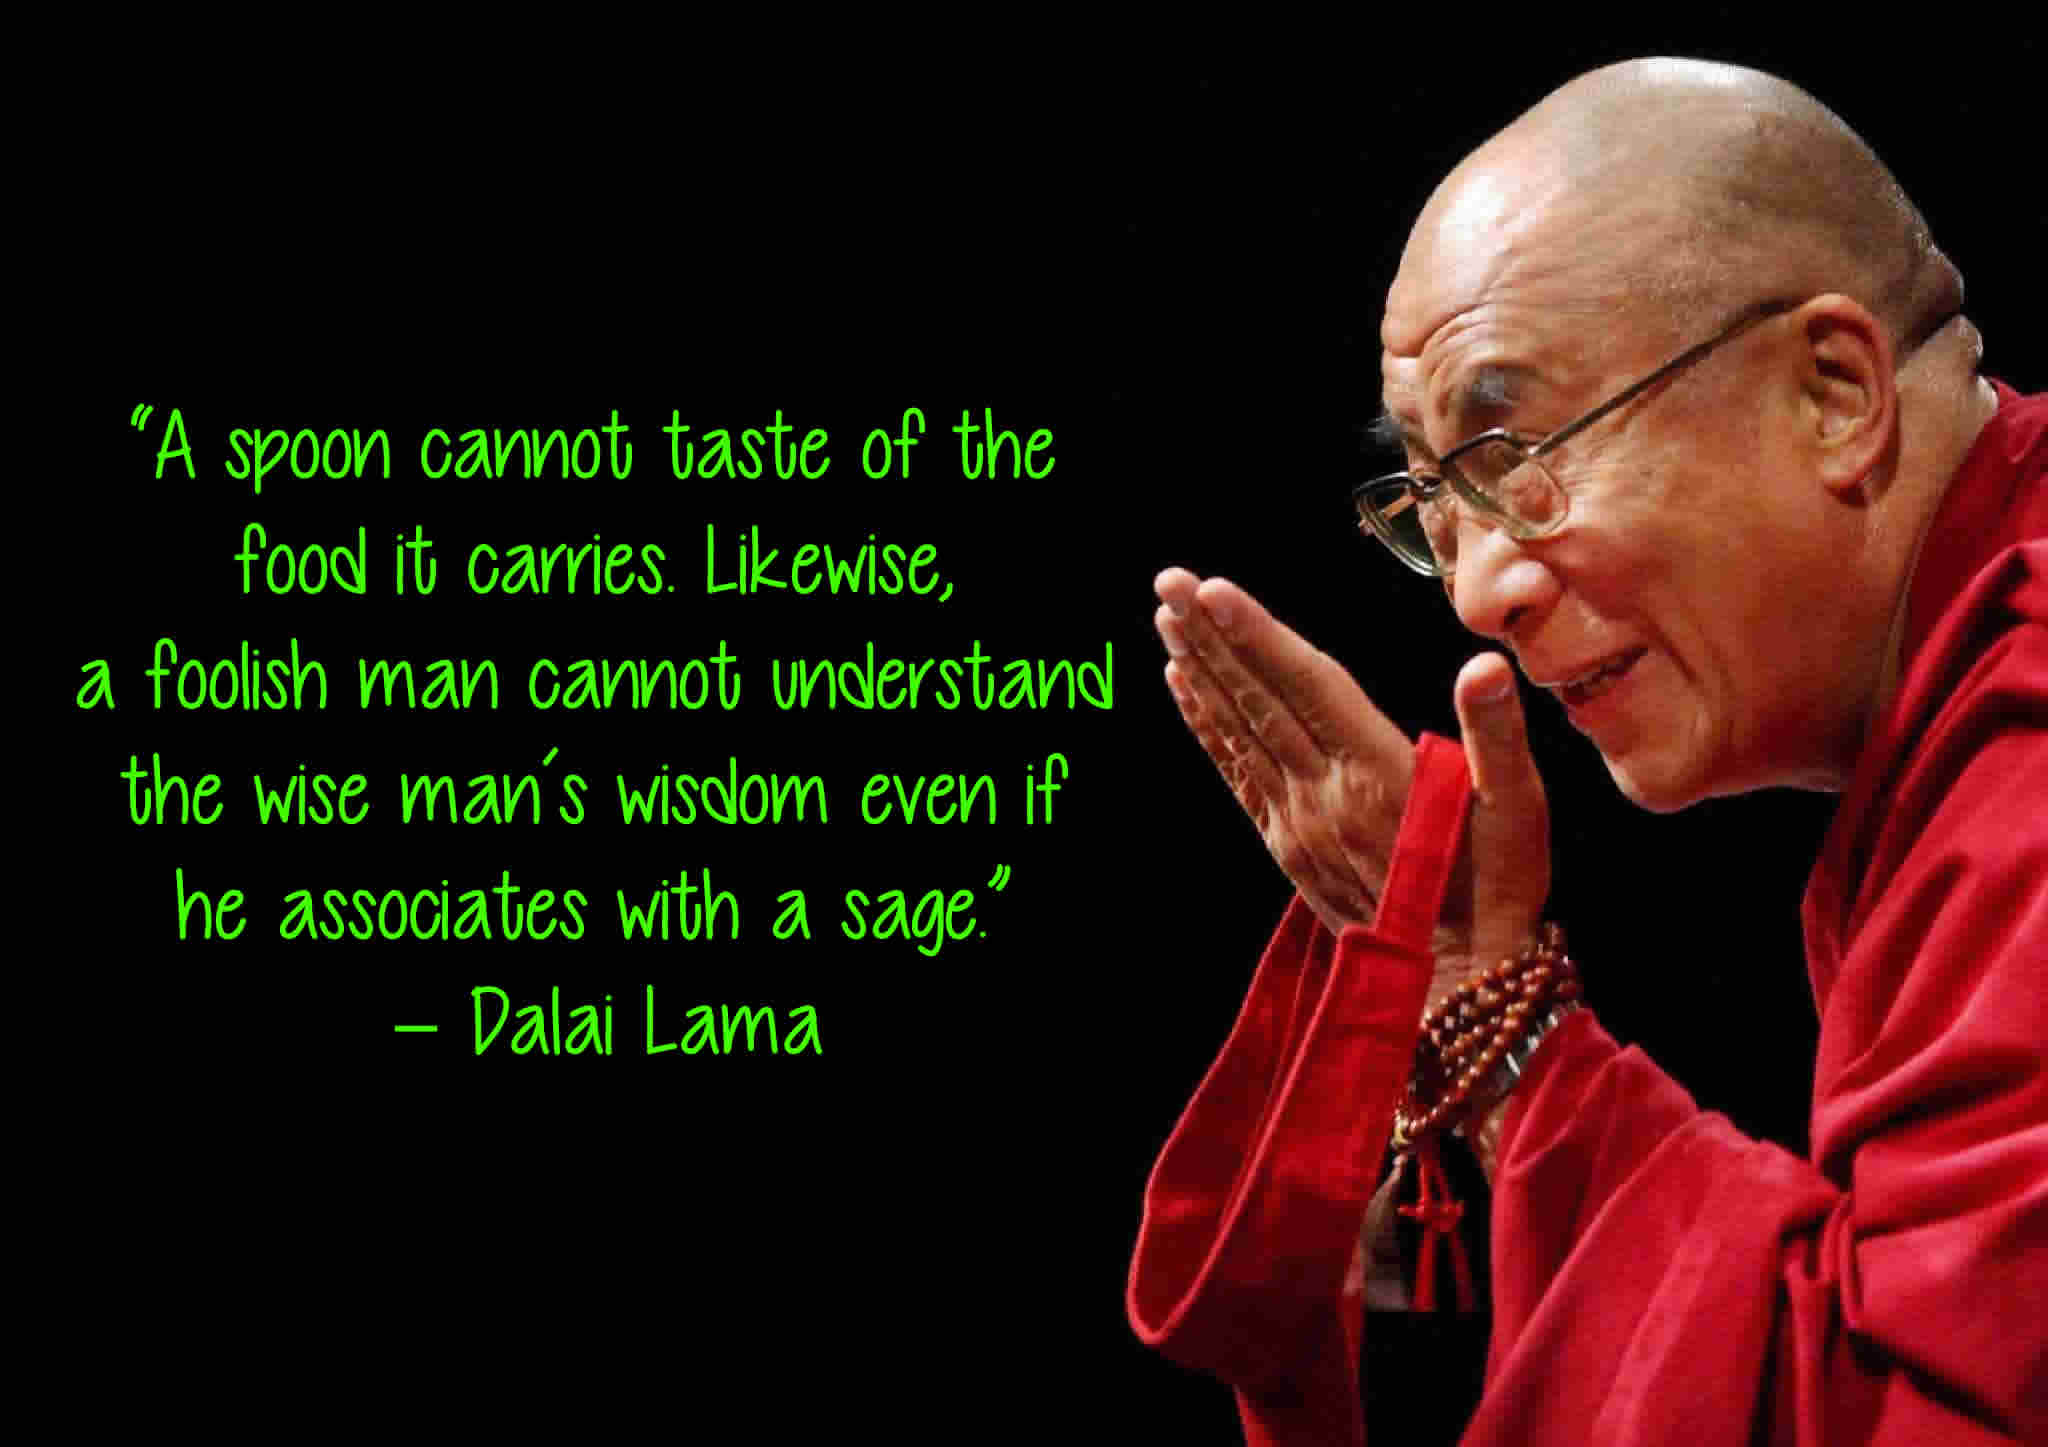 Dalai Lama Quotes On Life Dalai Lama Quotes That Will Change The Way You Think